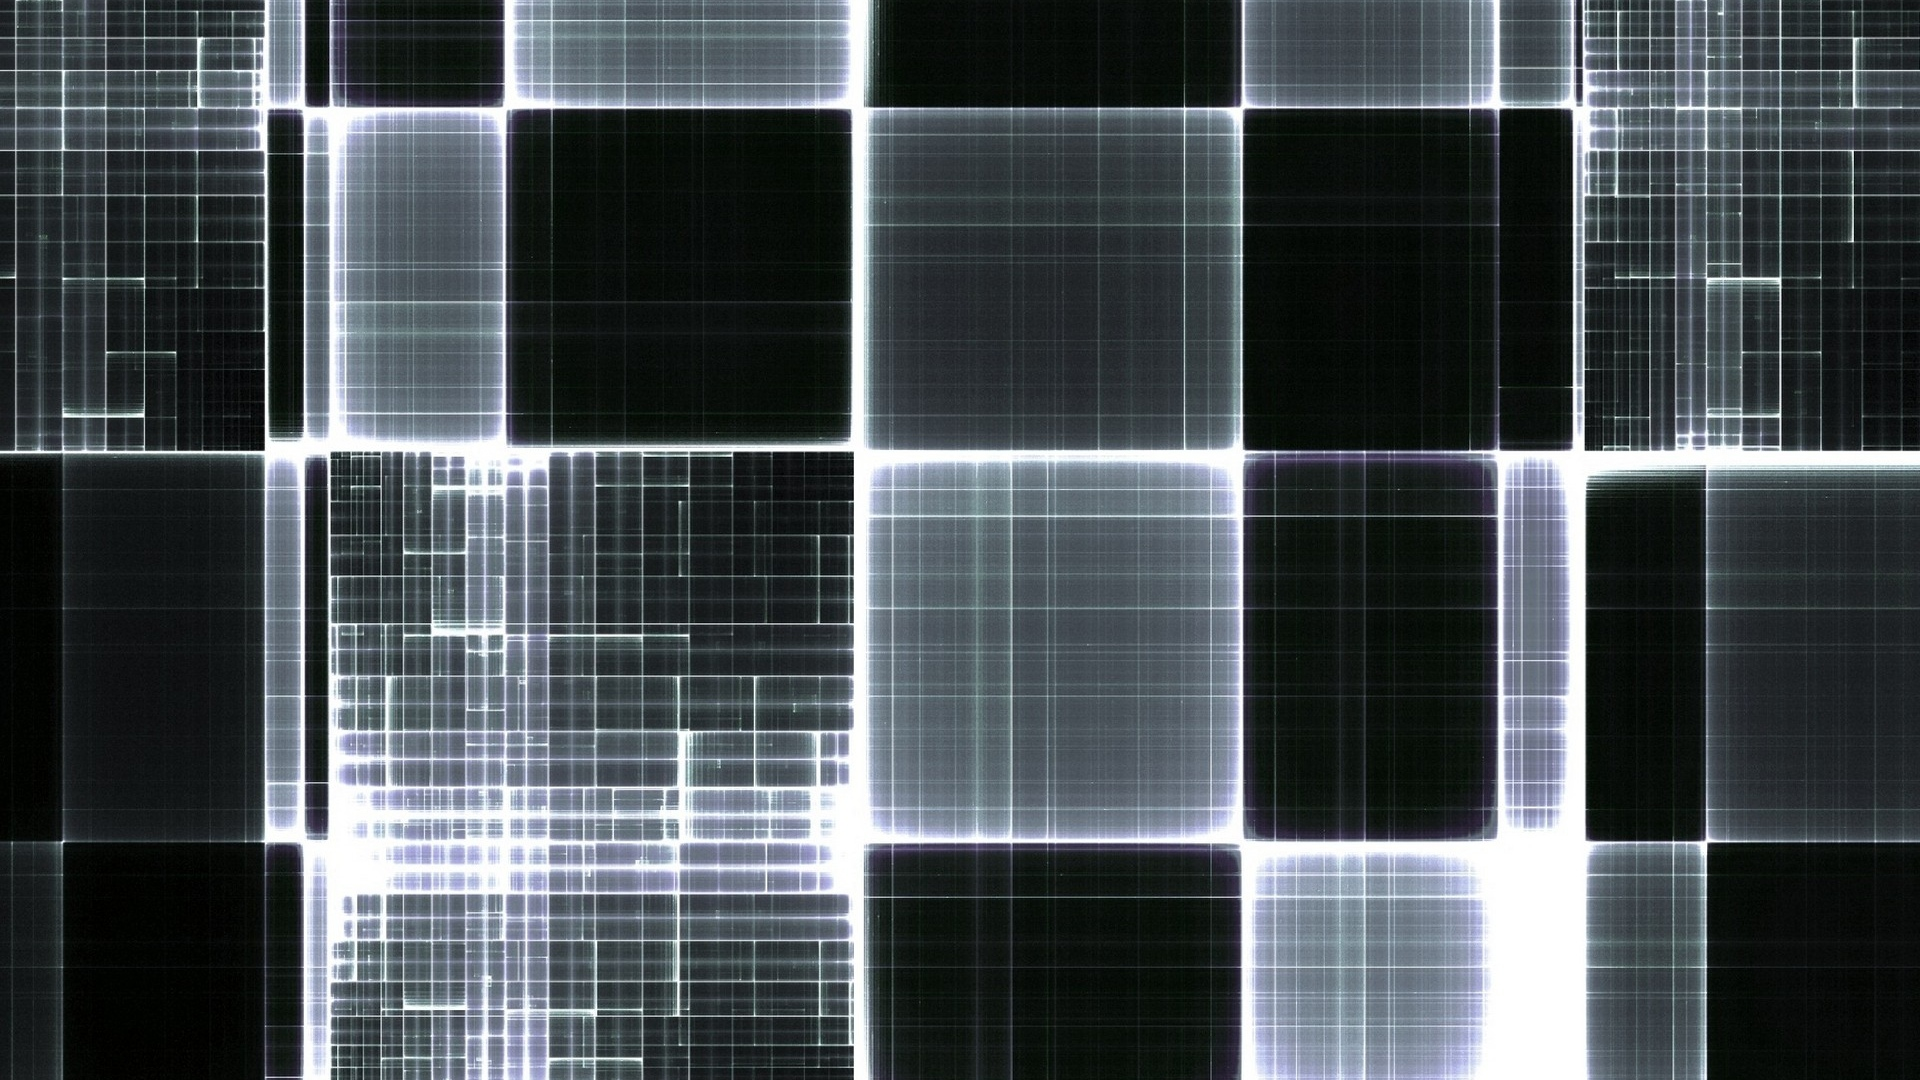 Get The Latest Cube Black White Color News Pictures And Videos Learn All About From Wallpapers4uorg Your Wallpaper